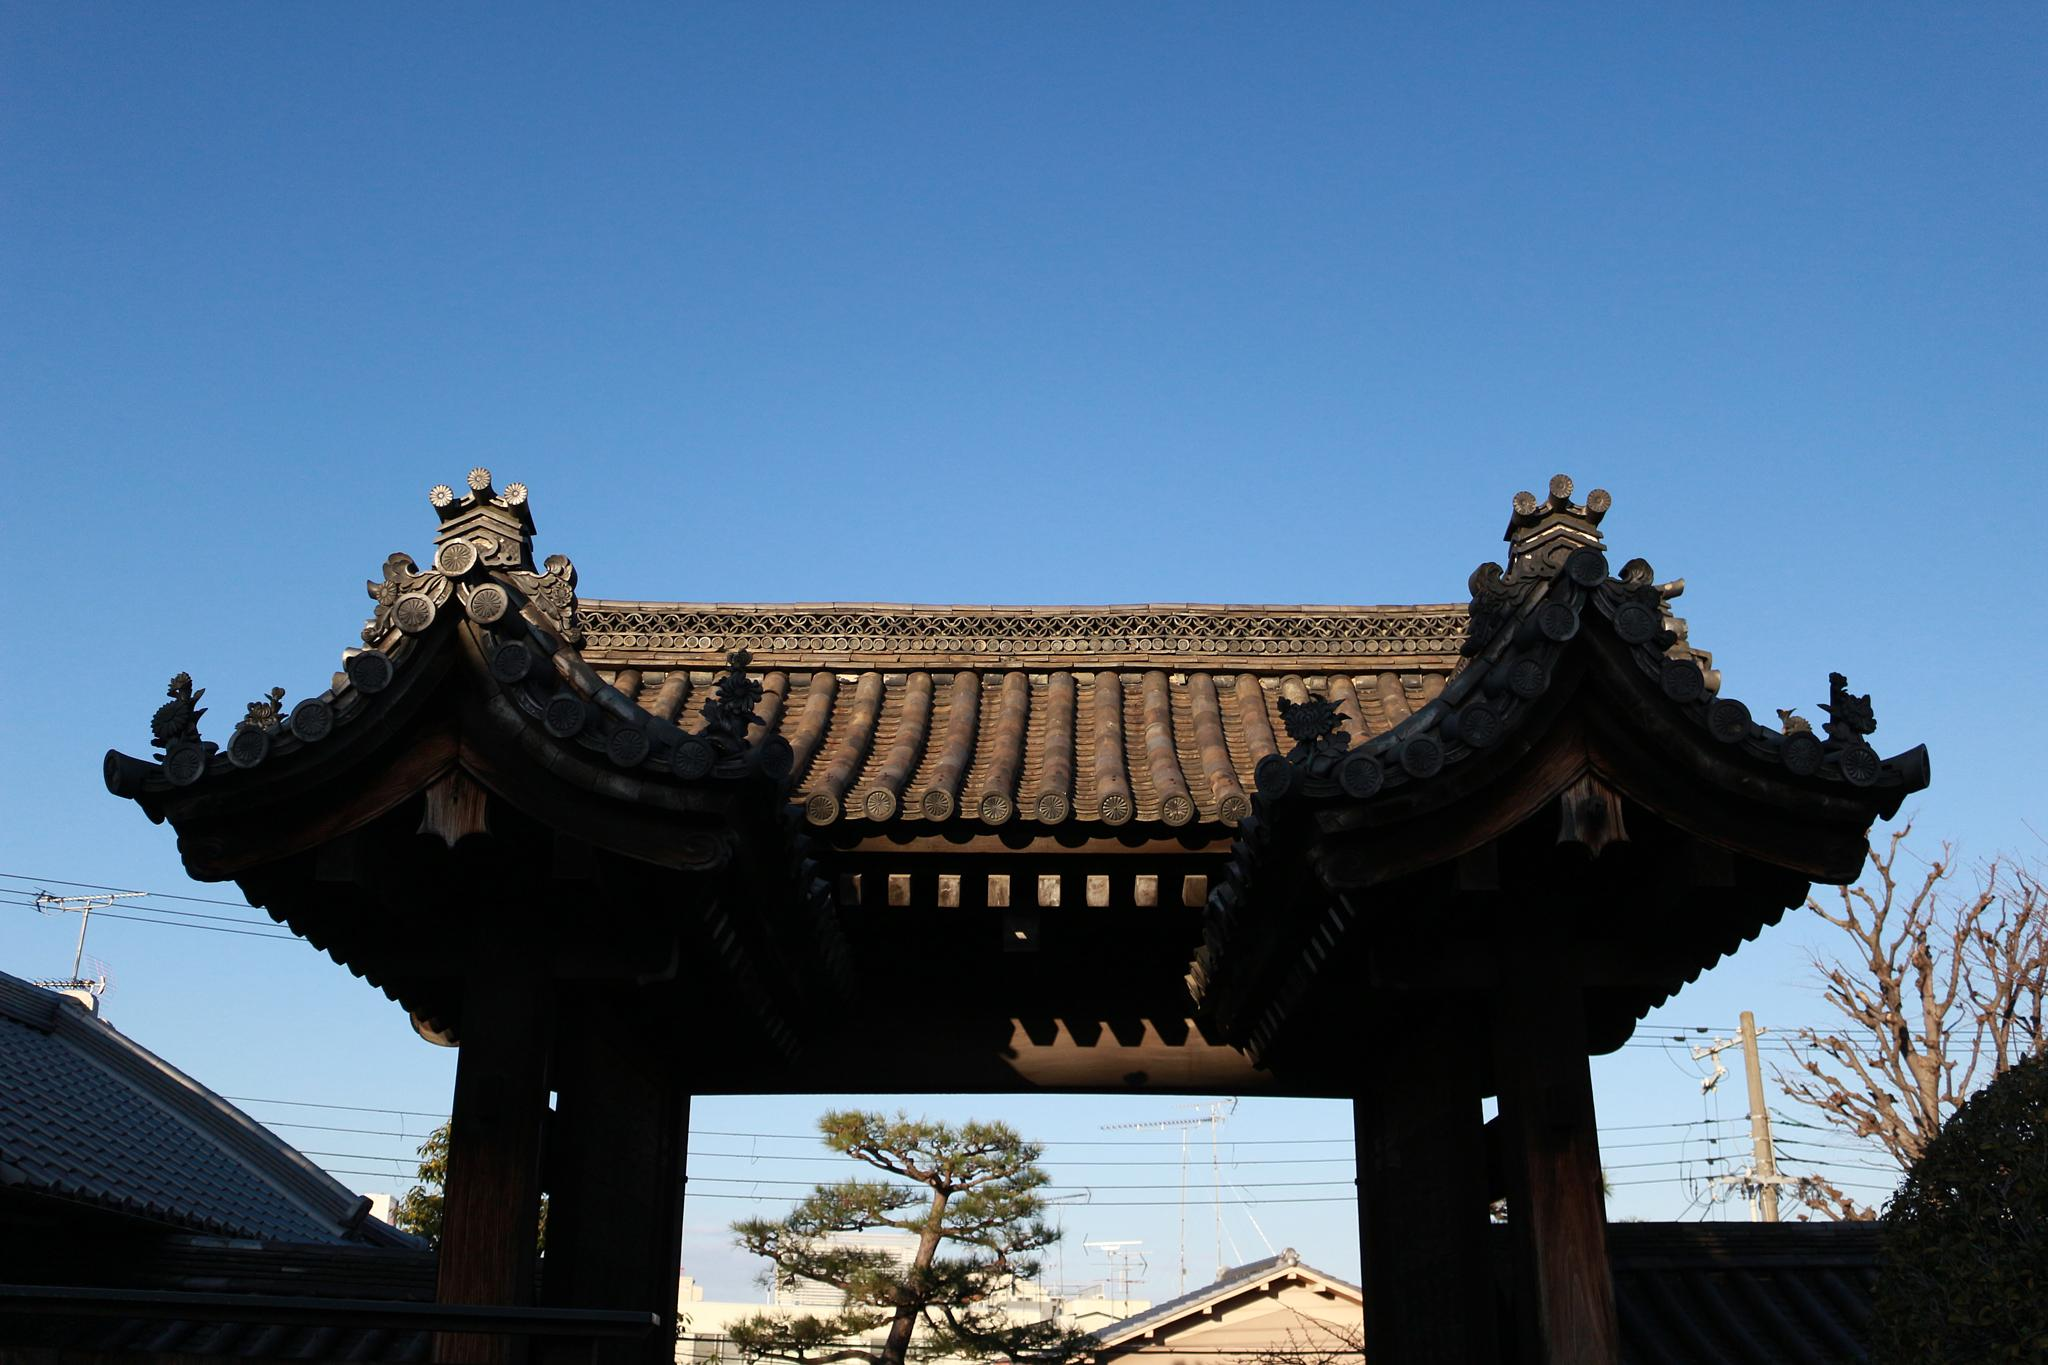 - Temple Entrance Rooftop - by GuillaumeTanneux